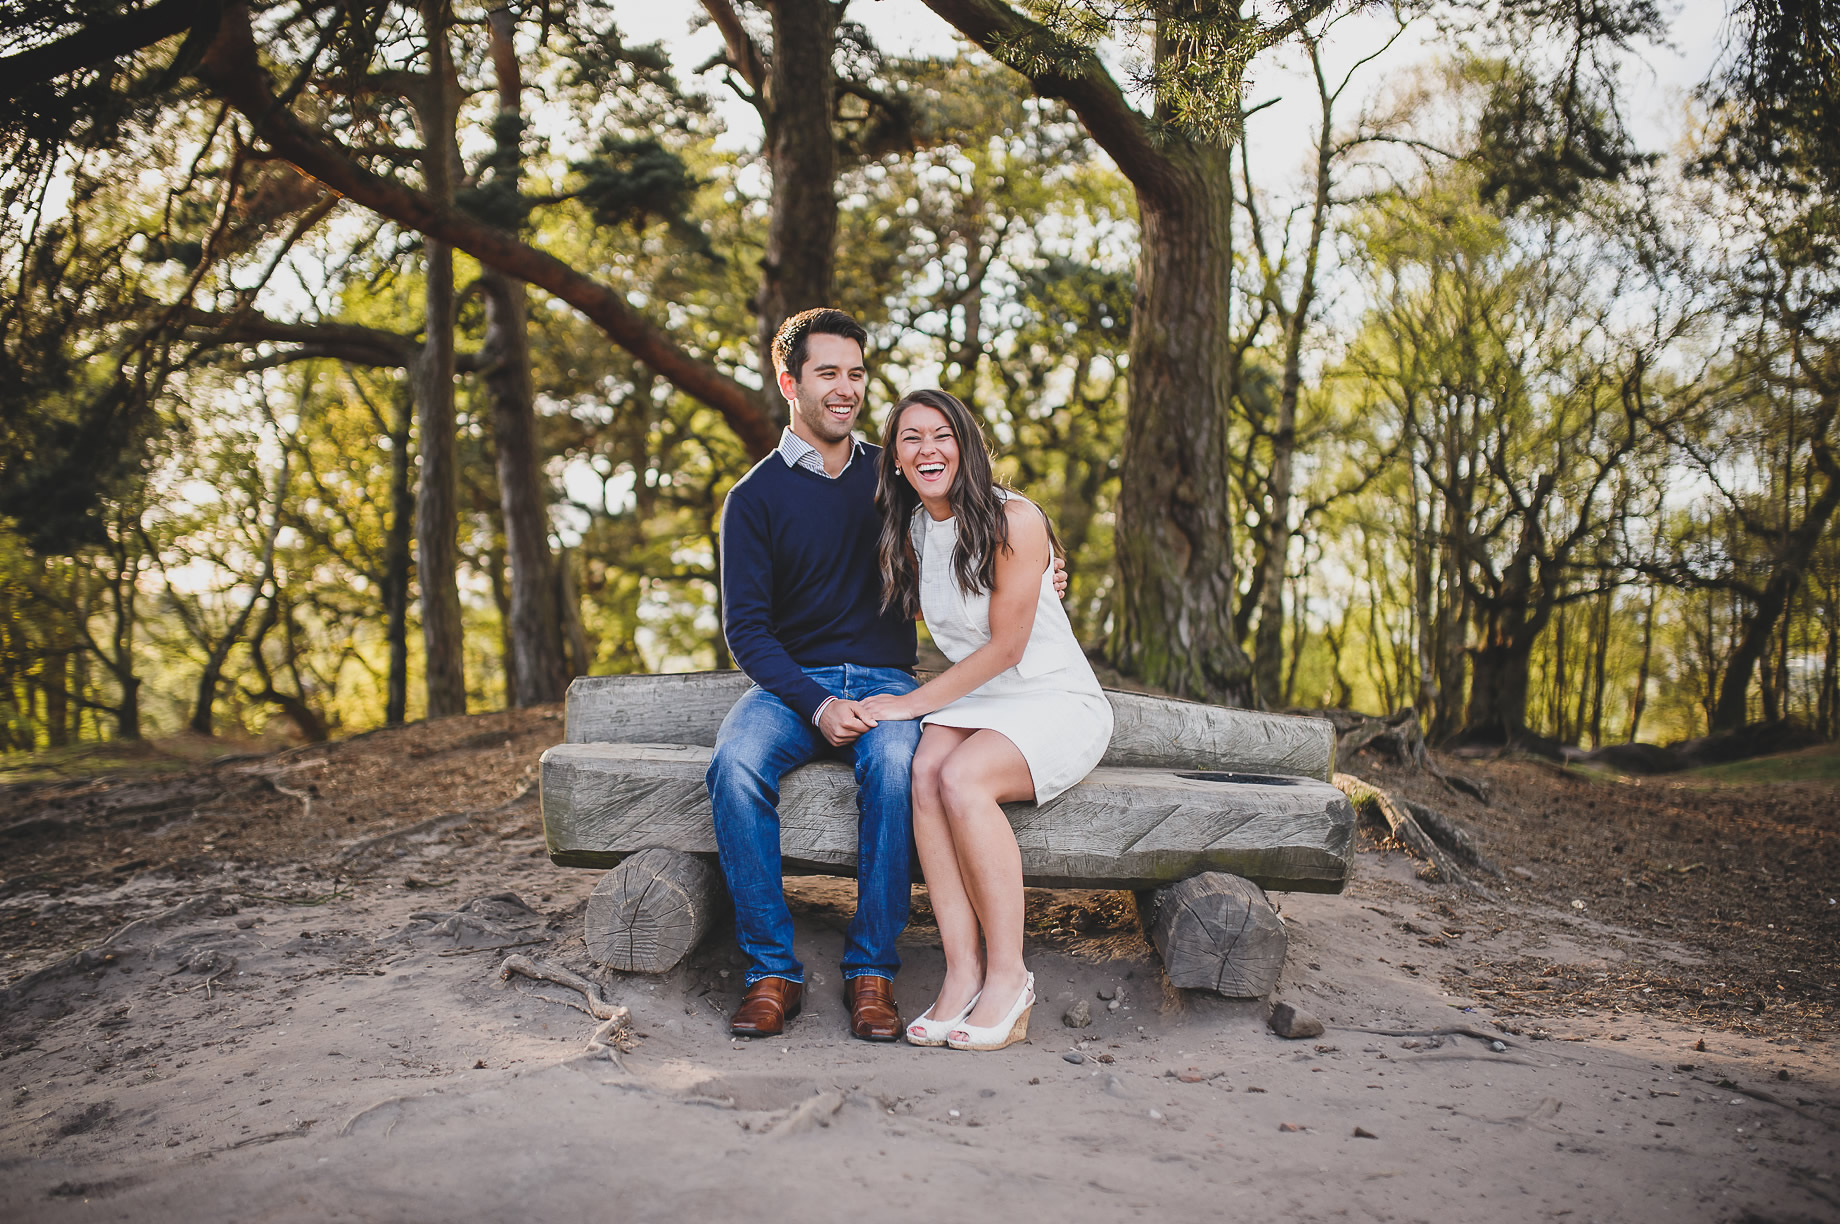 Laura and Matt Pre-Wedding Shoot in Alderley Edge 014